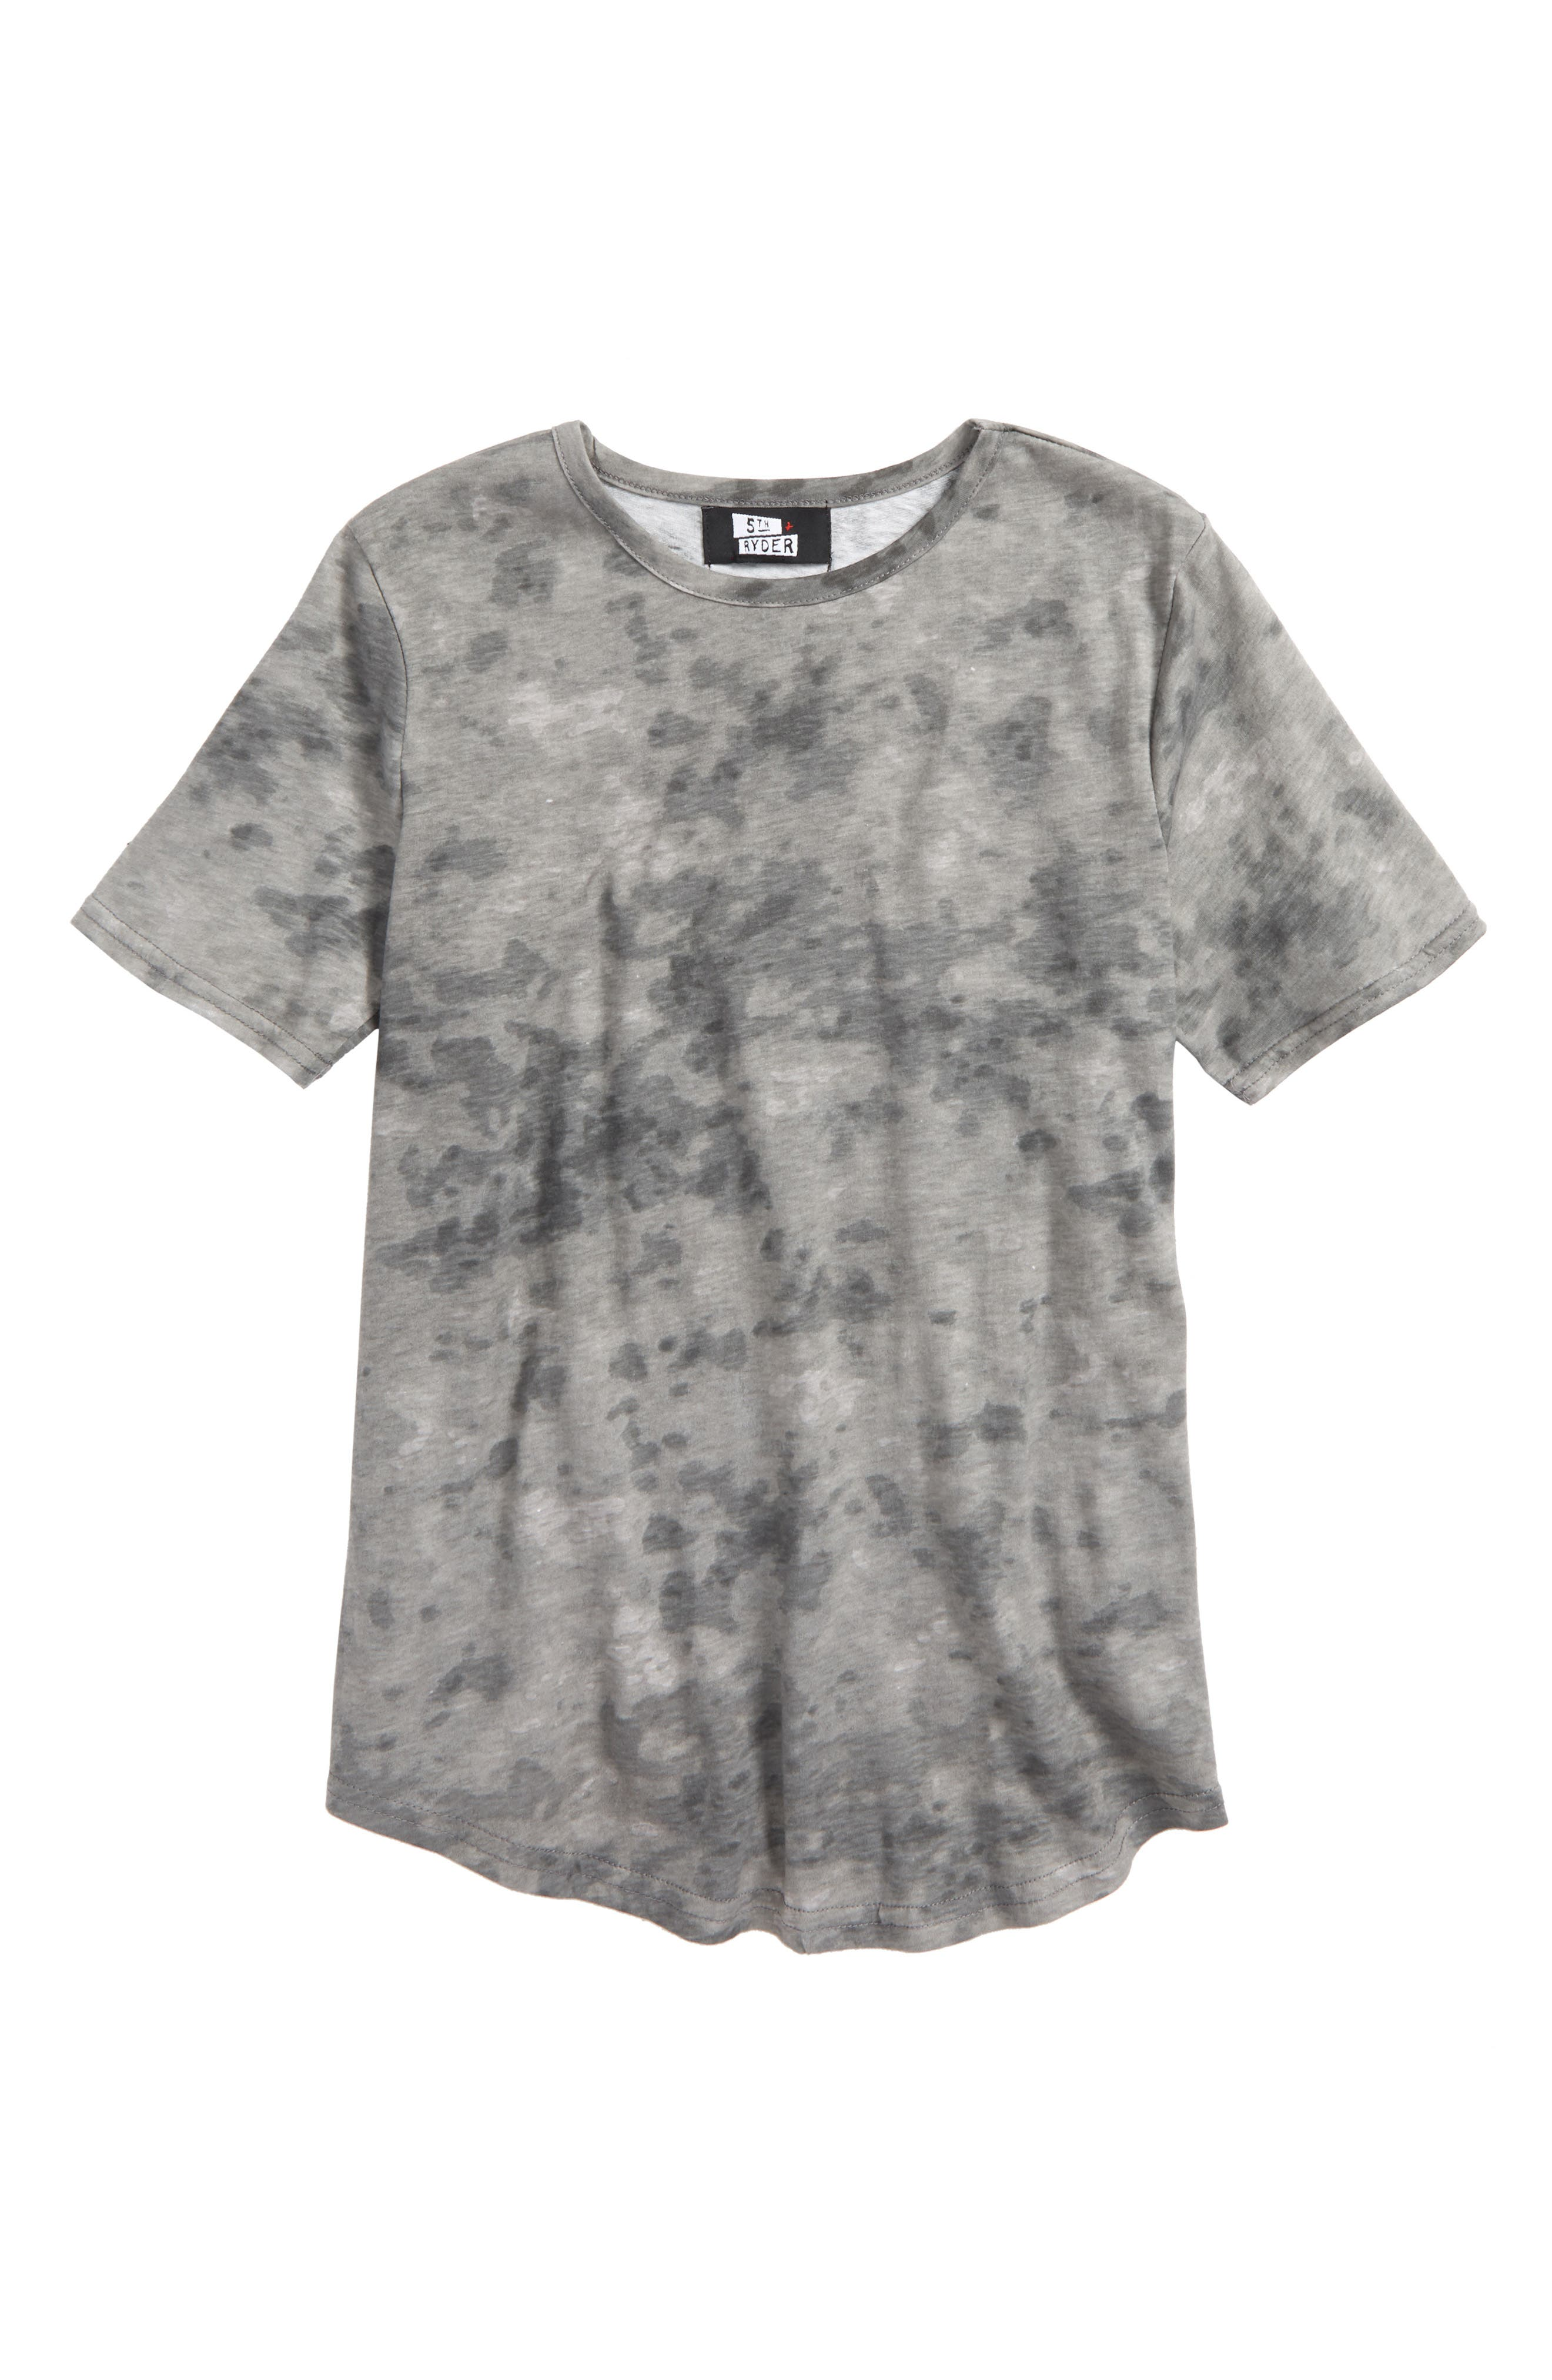 5TH AND RYDER Tie Dye T-Shirt, Main, color, 060